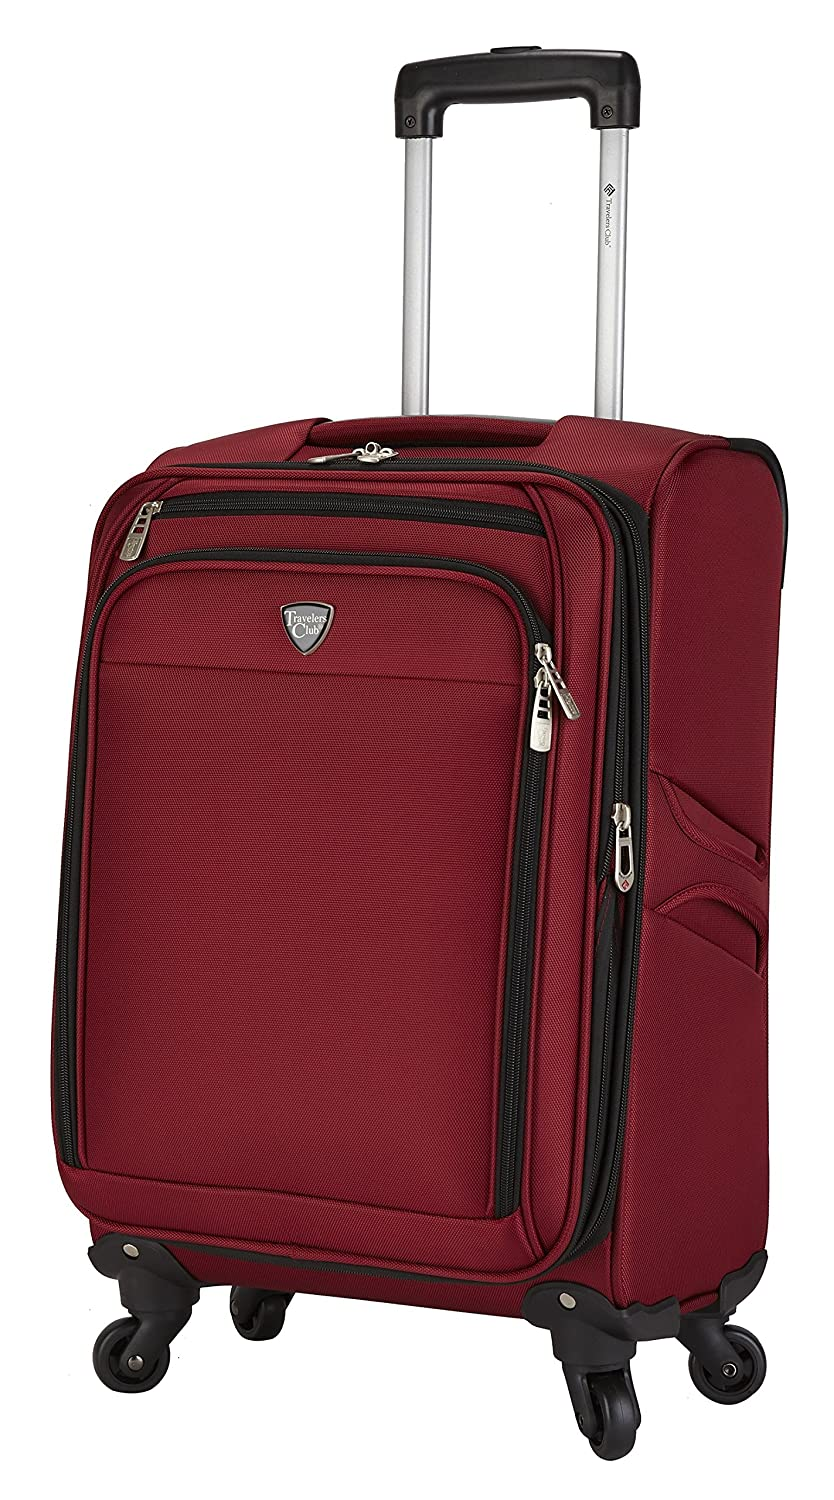 Travelers Club 18 4 Wheel Spinner Carry-On Luggage Travelers Club Luggage TCL-10718-001